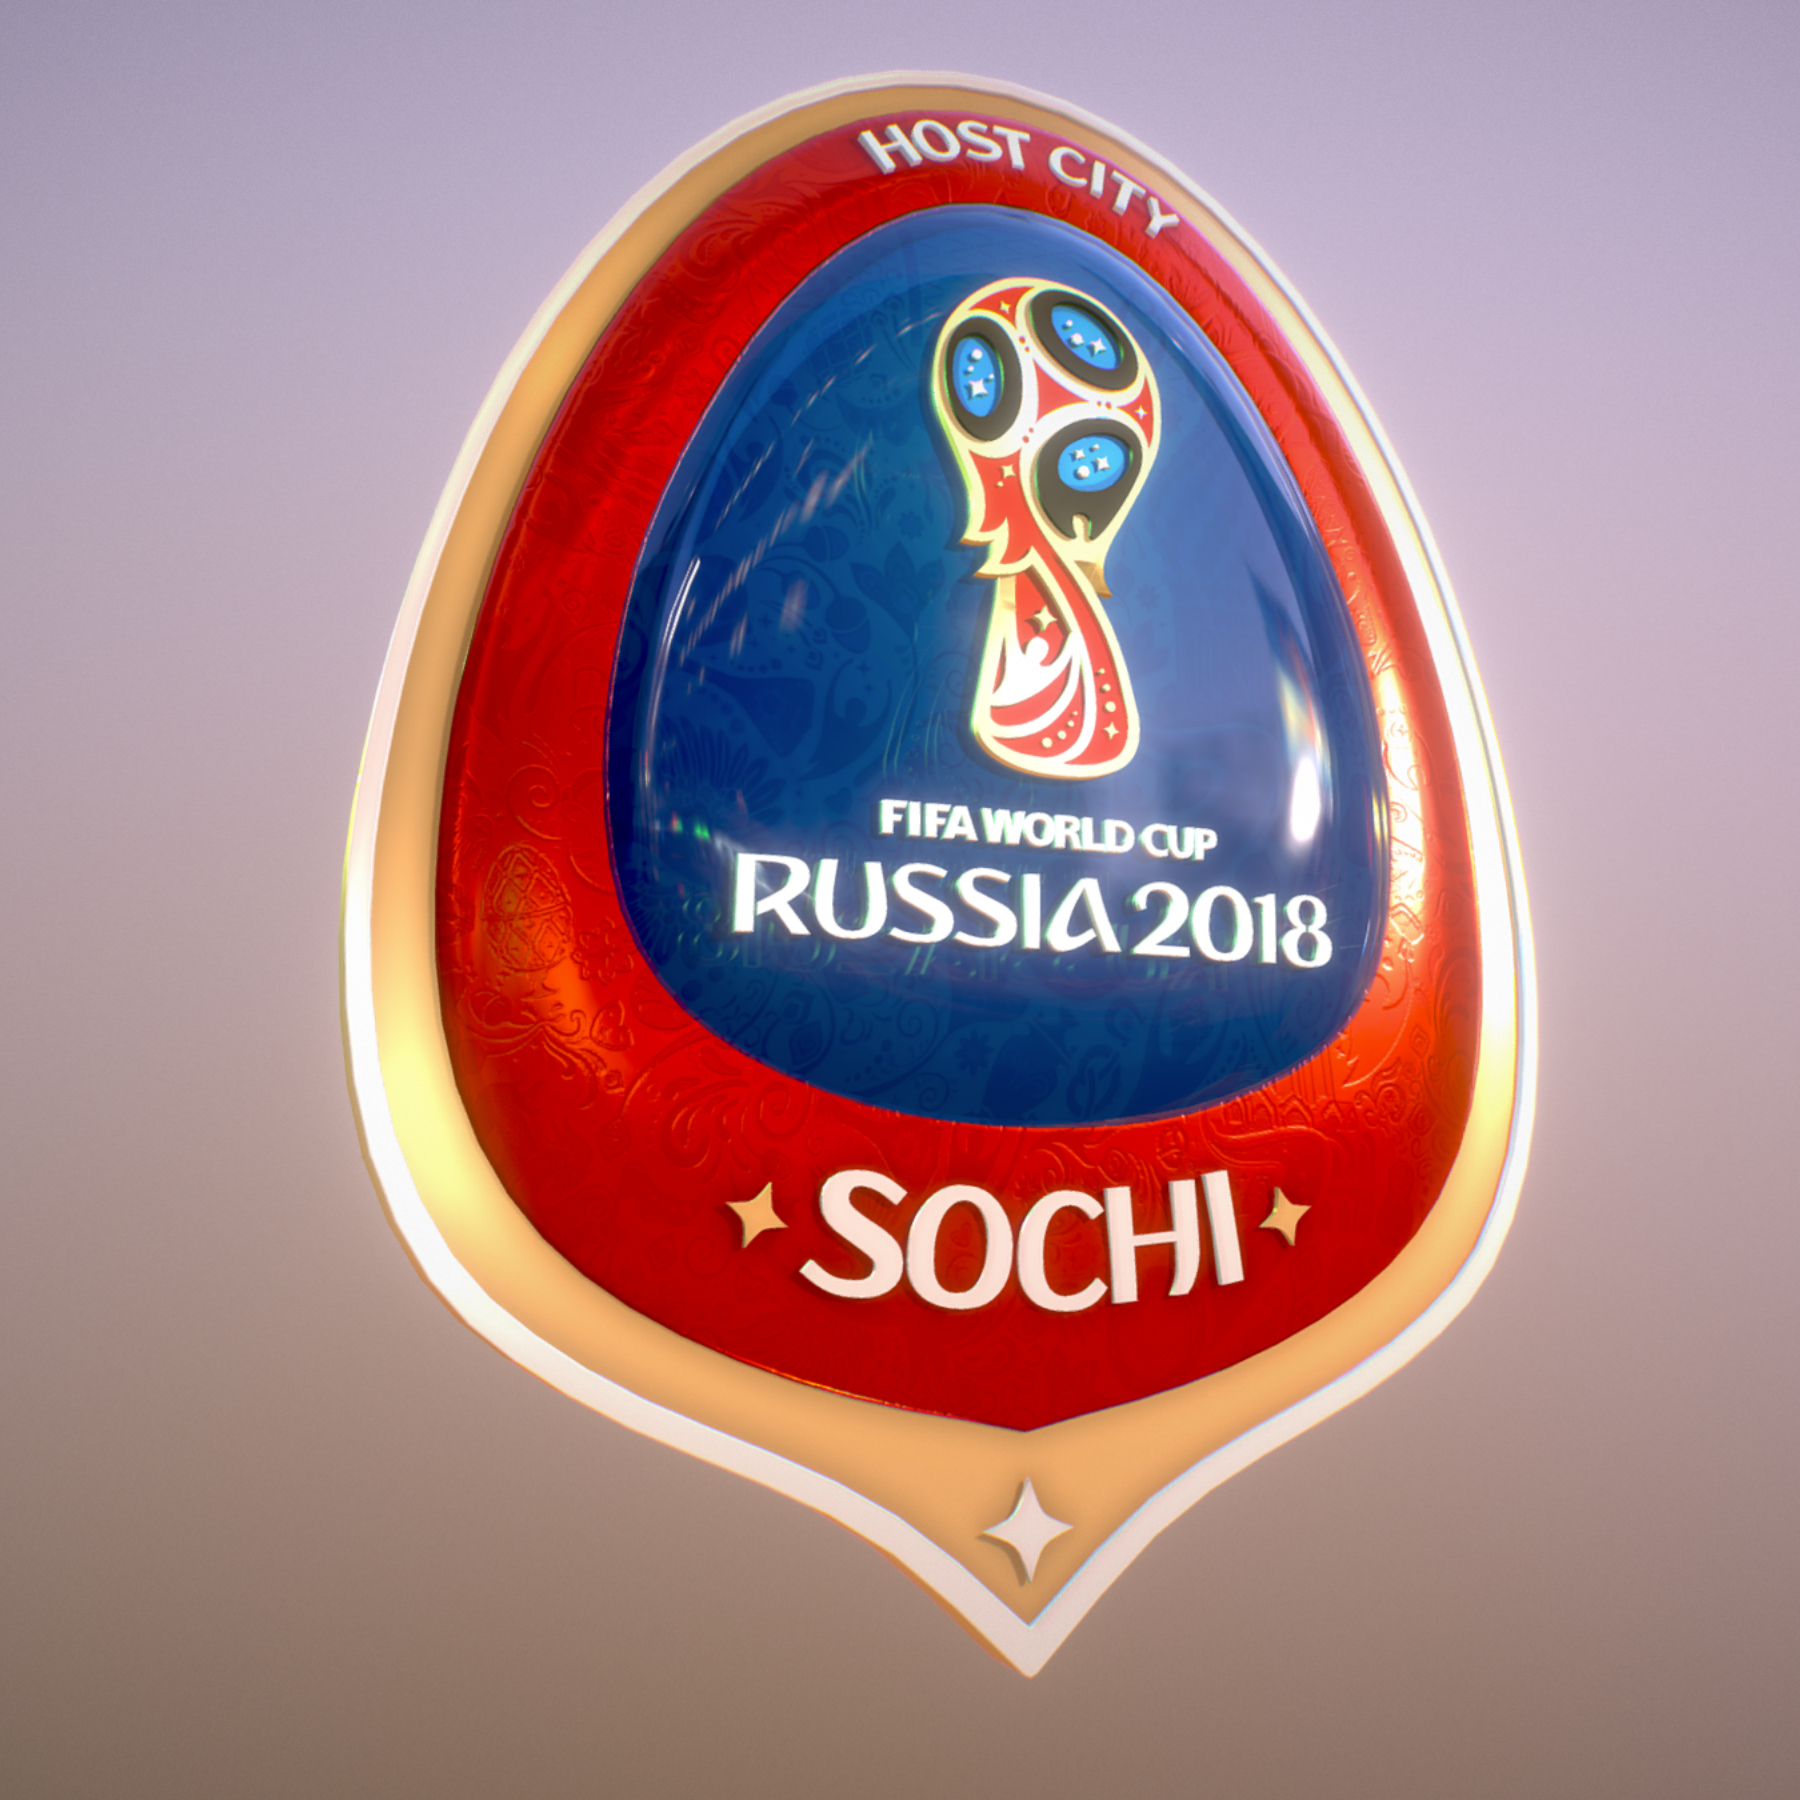 sochi host city world cup russia 2018 symbol 3d model max  fbx ma mb obj 271708